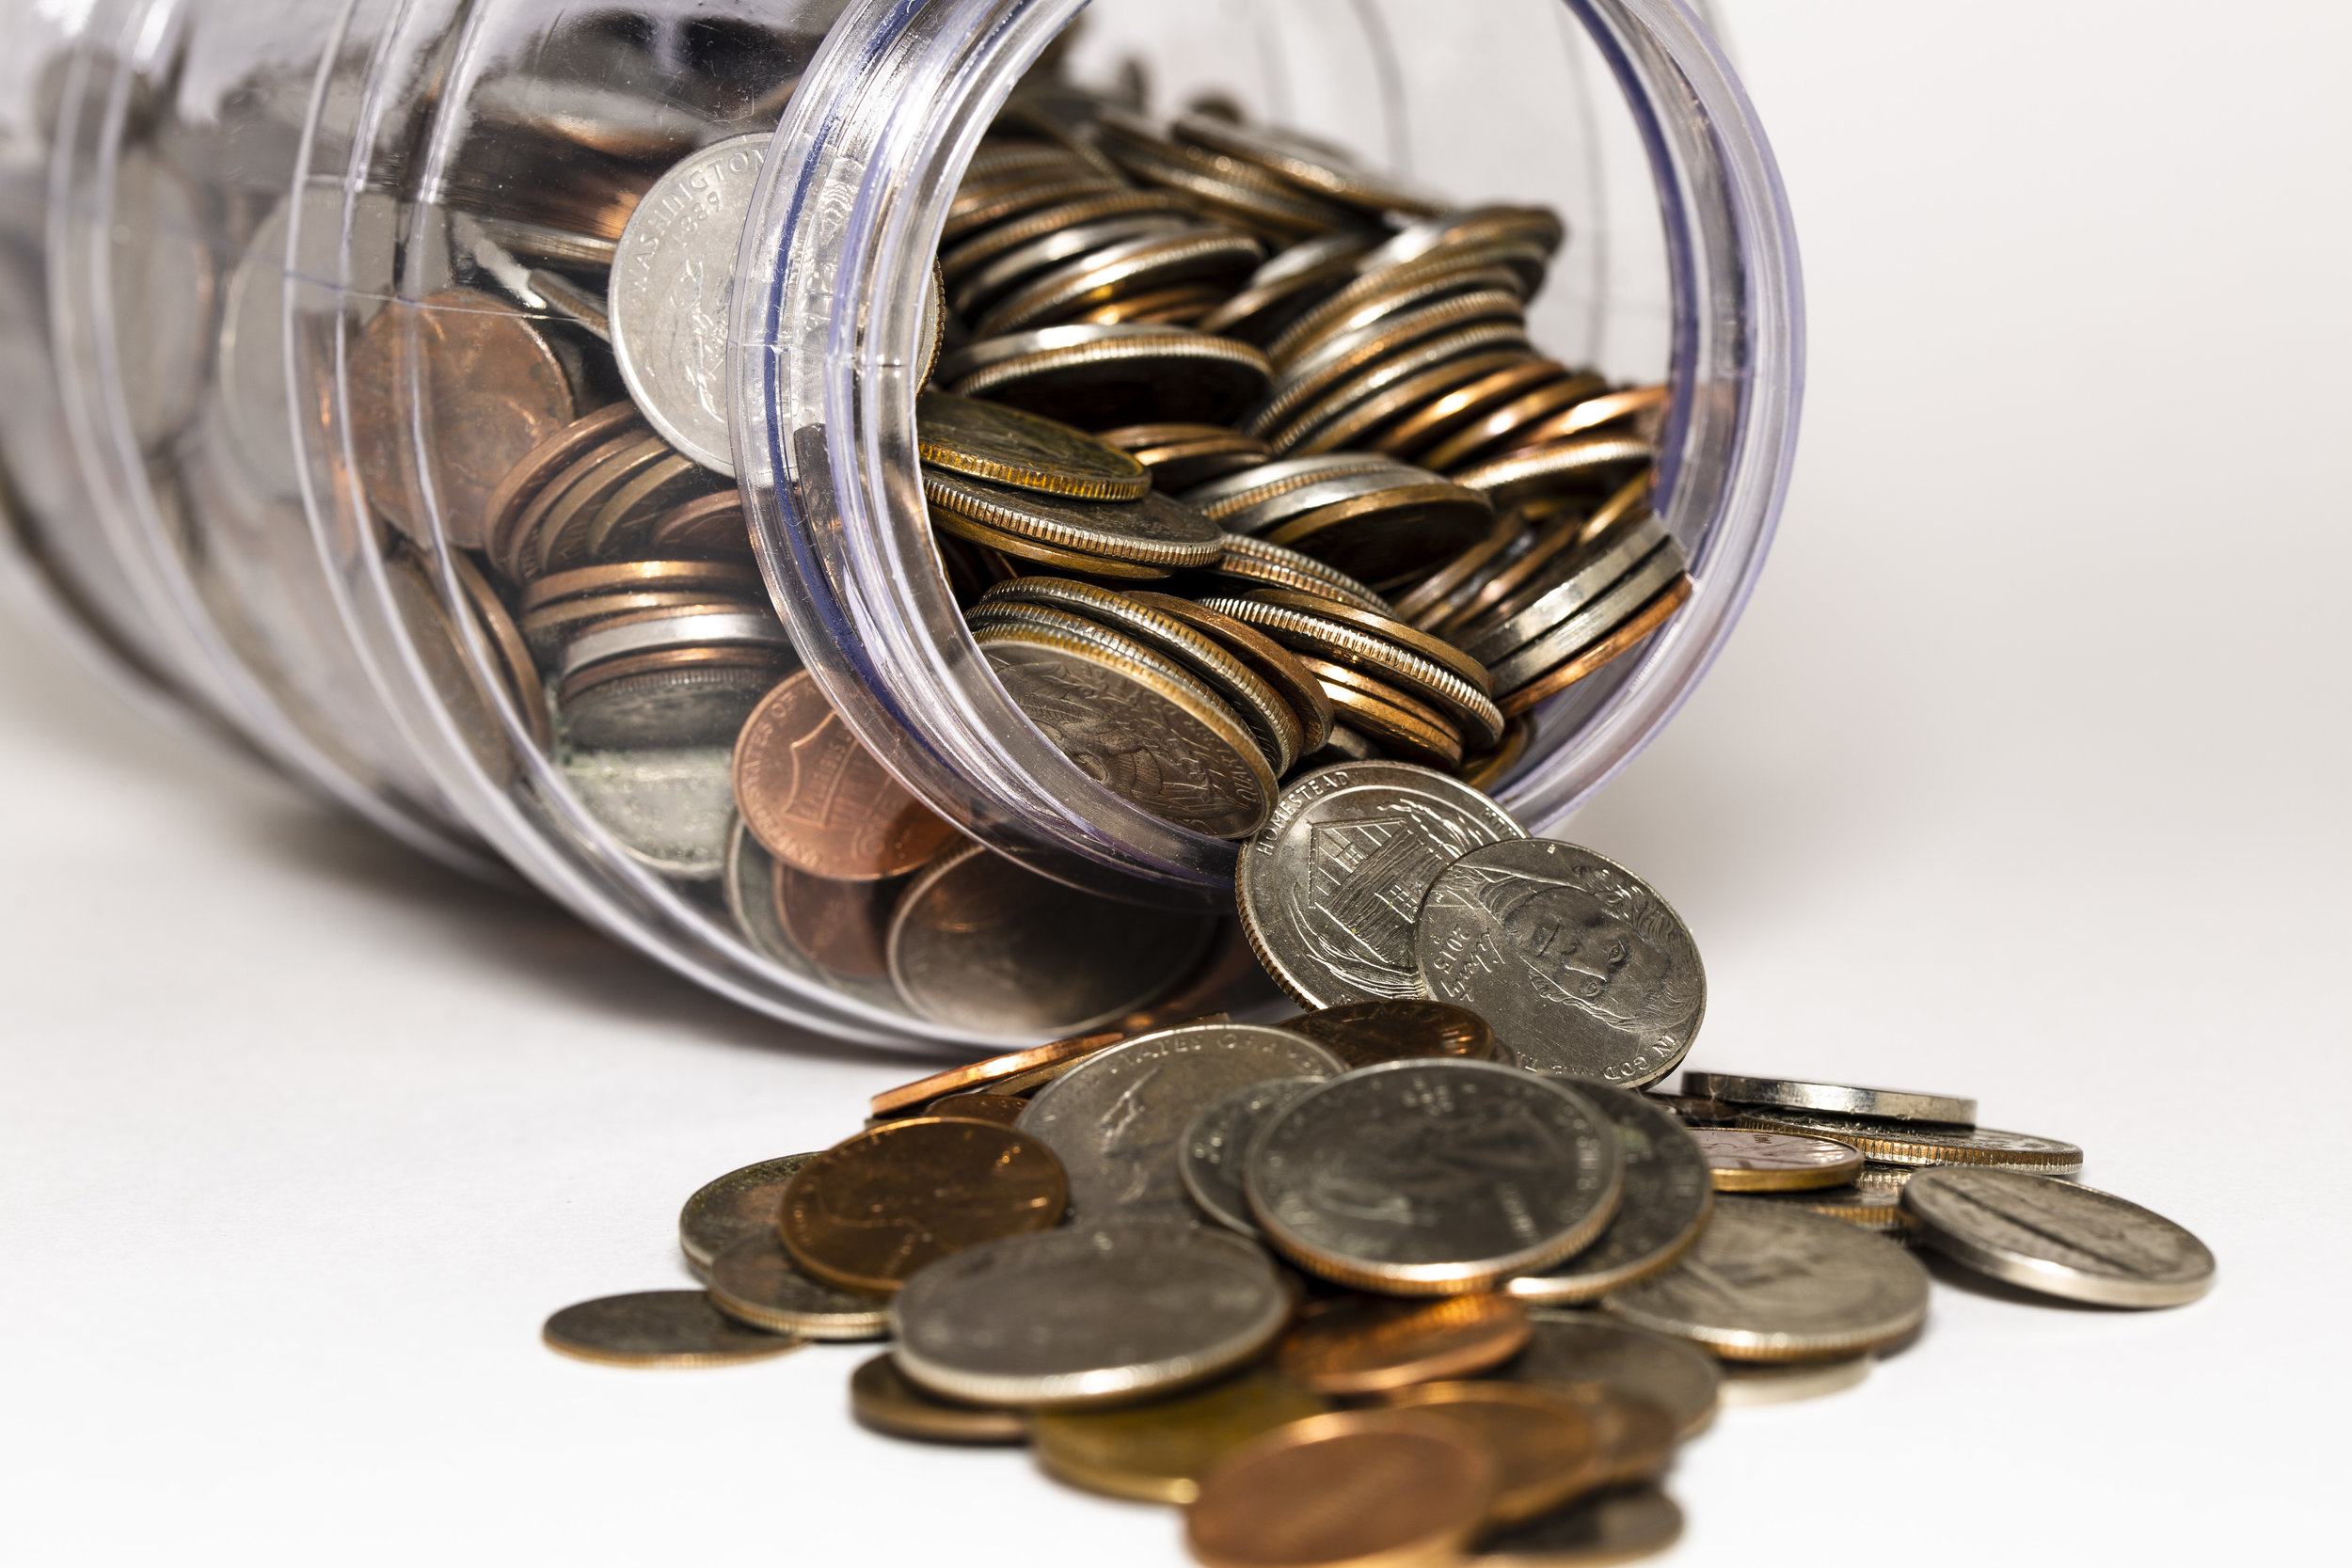 Short Term Annuities - We offer Short Term Annuities for the duration of Two (2), Three (3), and Five (5) Years.